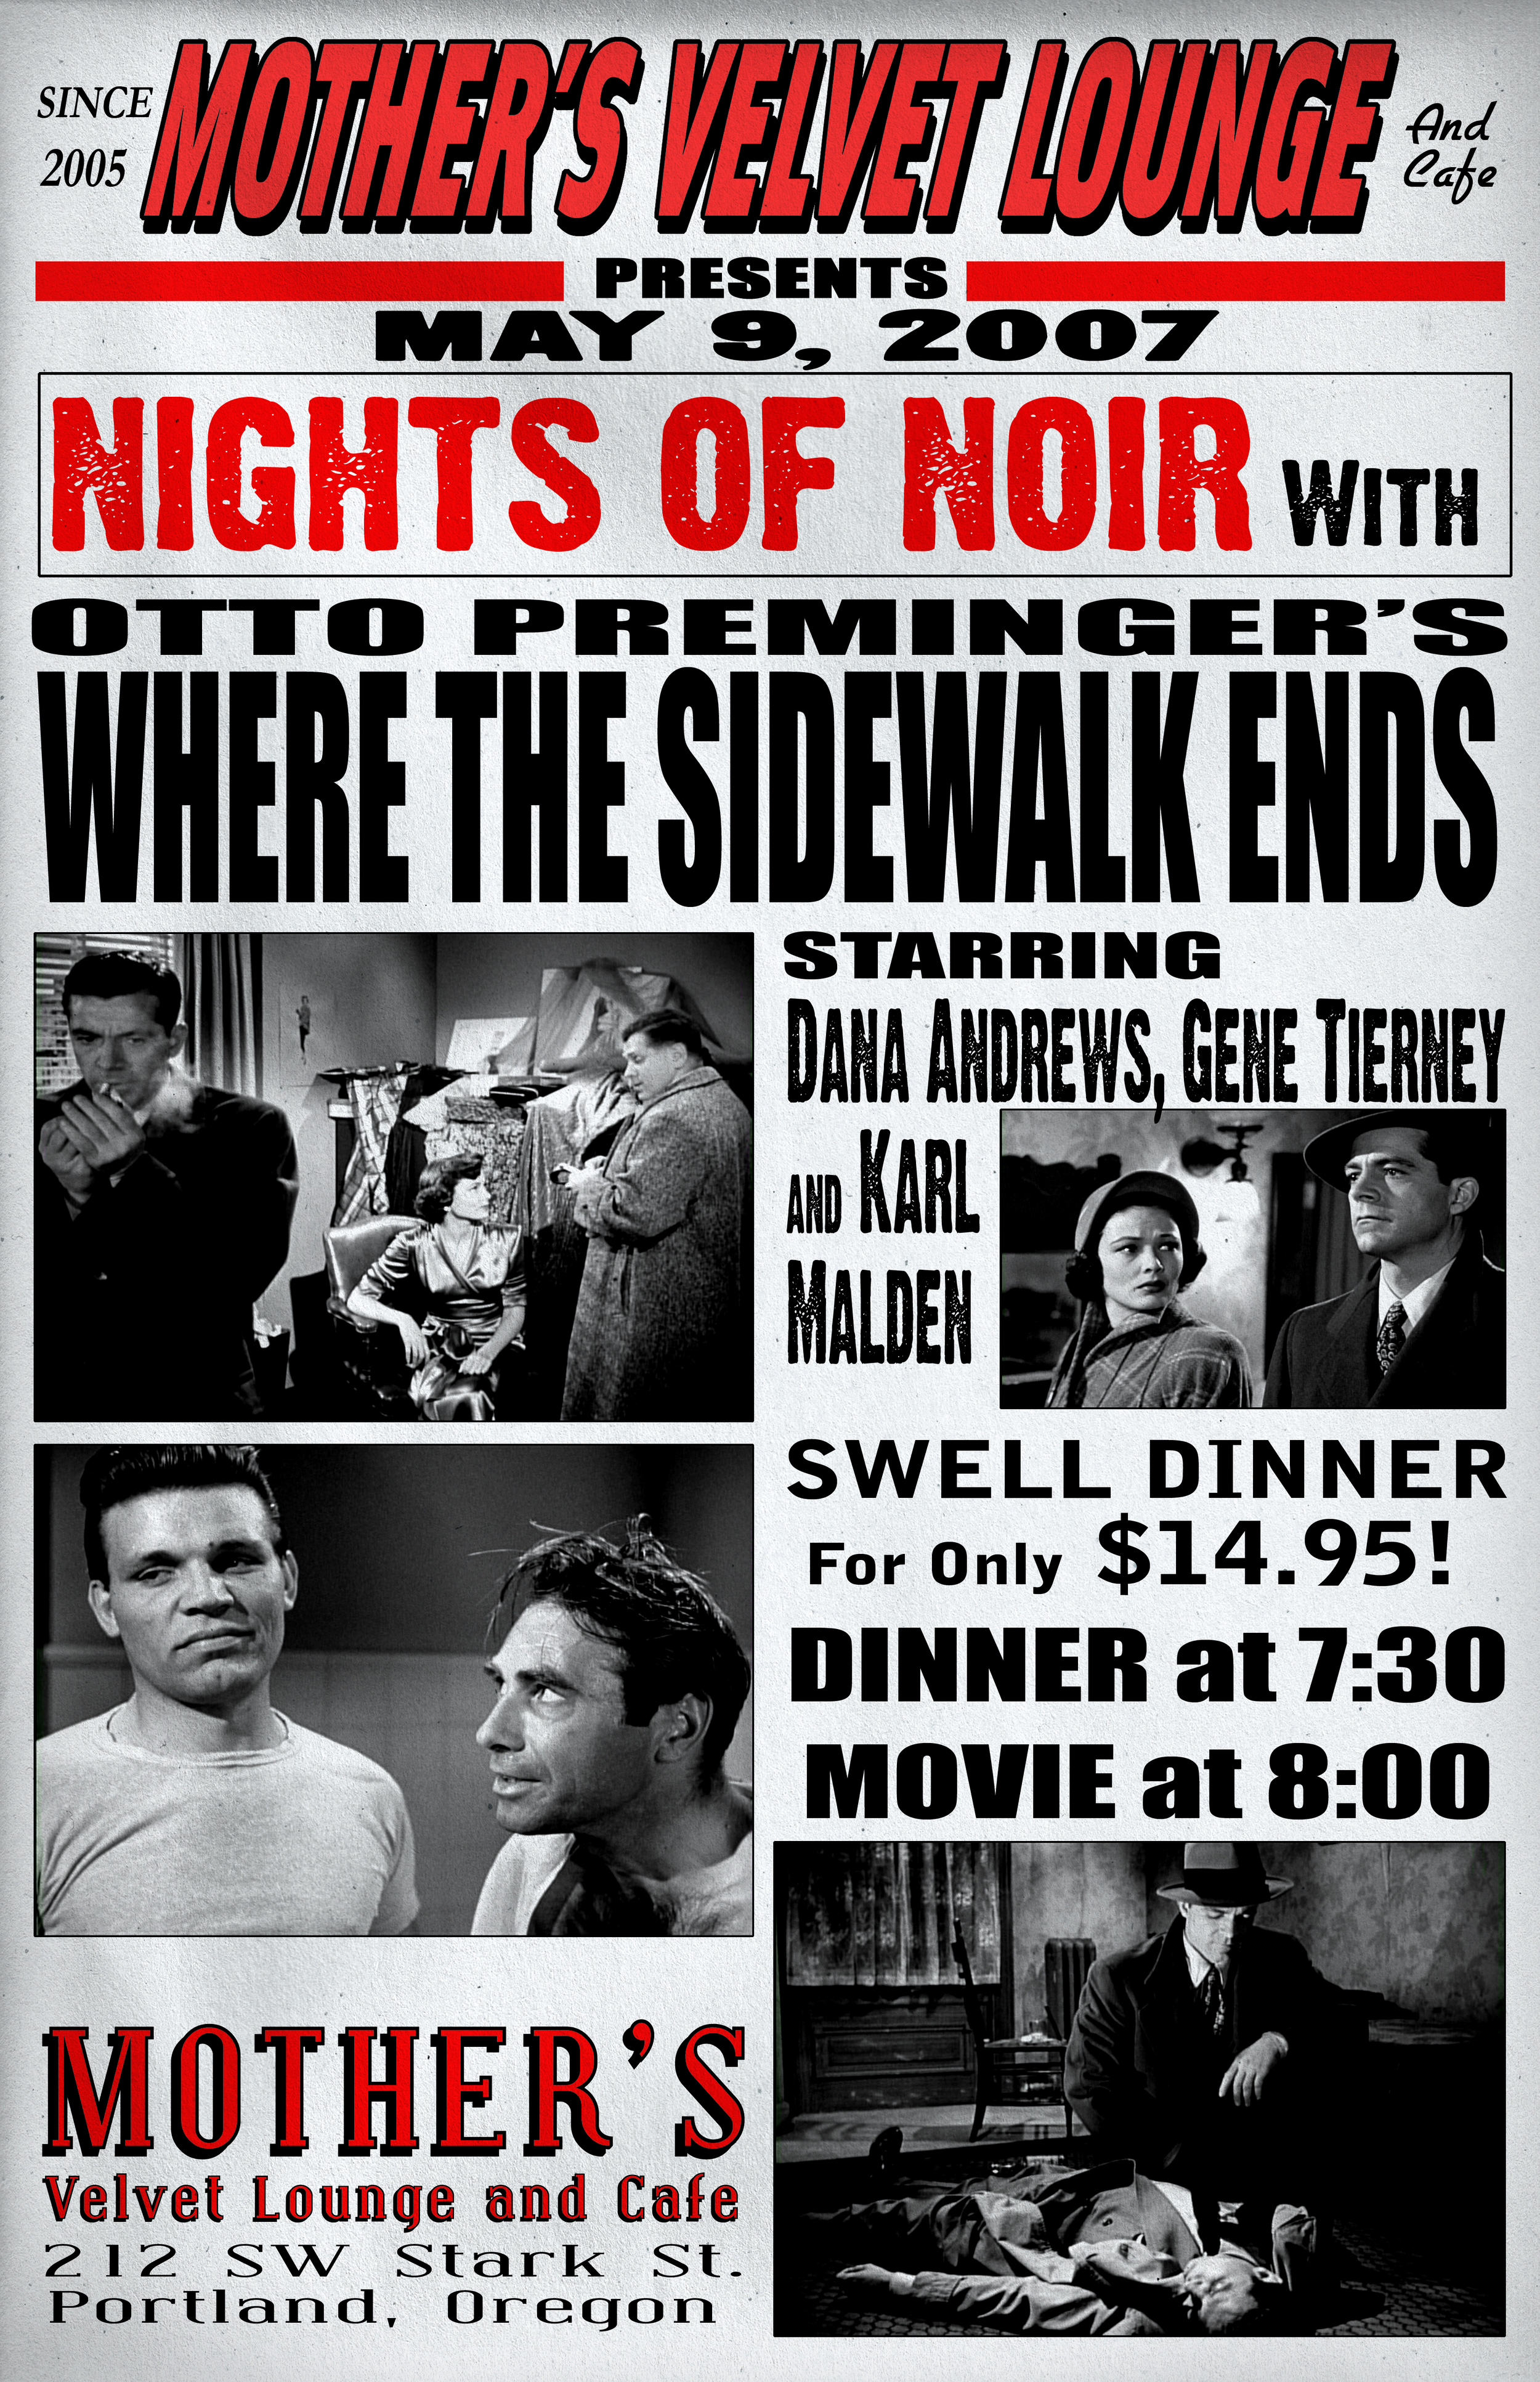 Where The Sidewalk Ends   (1950)  Otto Preminger